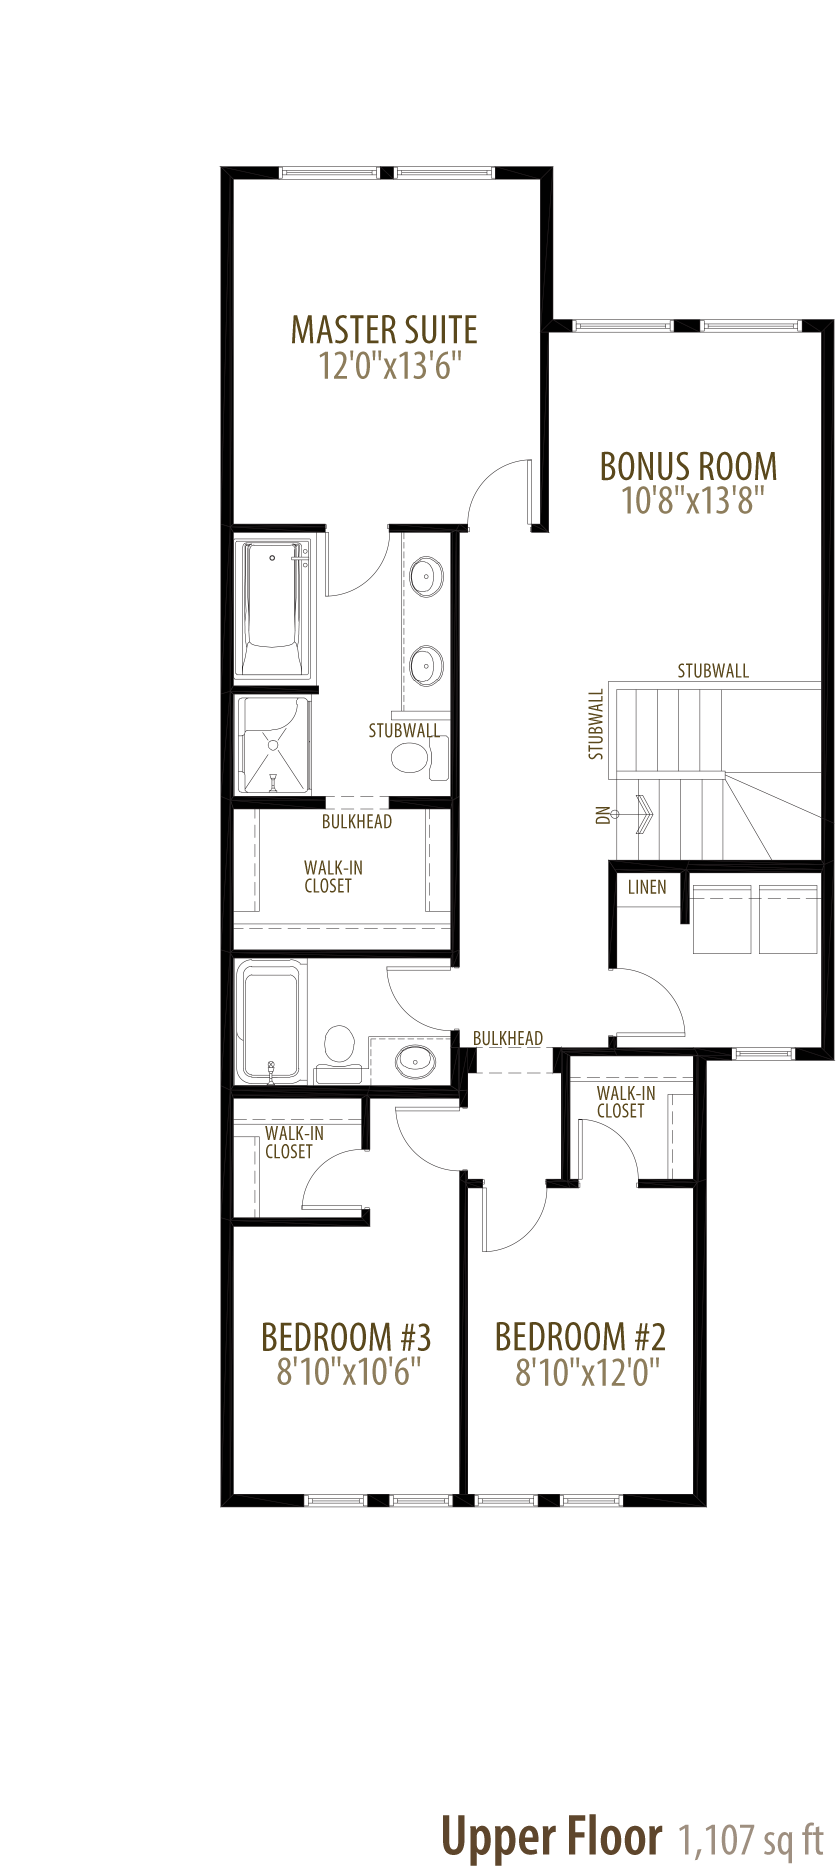 932 McConachie Blvd Floorplan